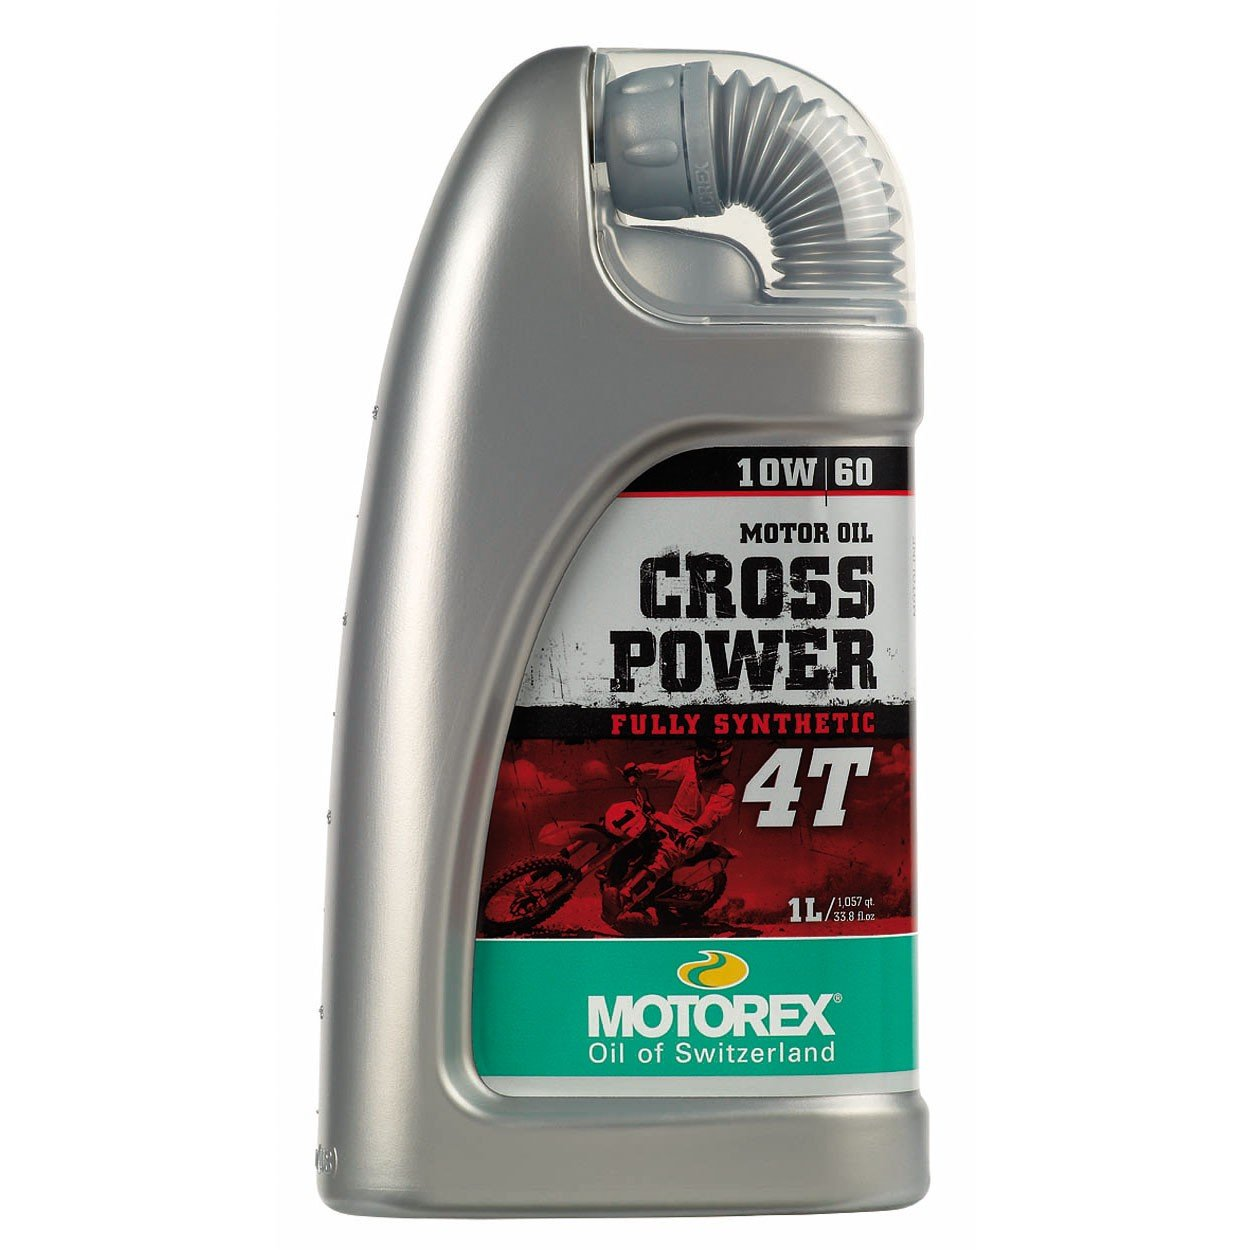 Motorex CROSS POWER 4T 10W-60, 1 l Cross Power 4T 10W60 1L